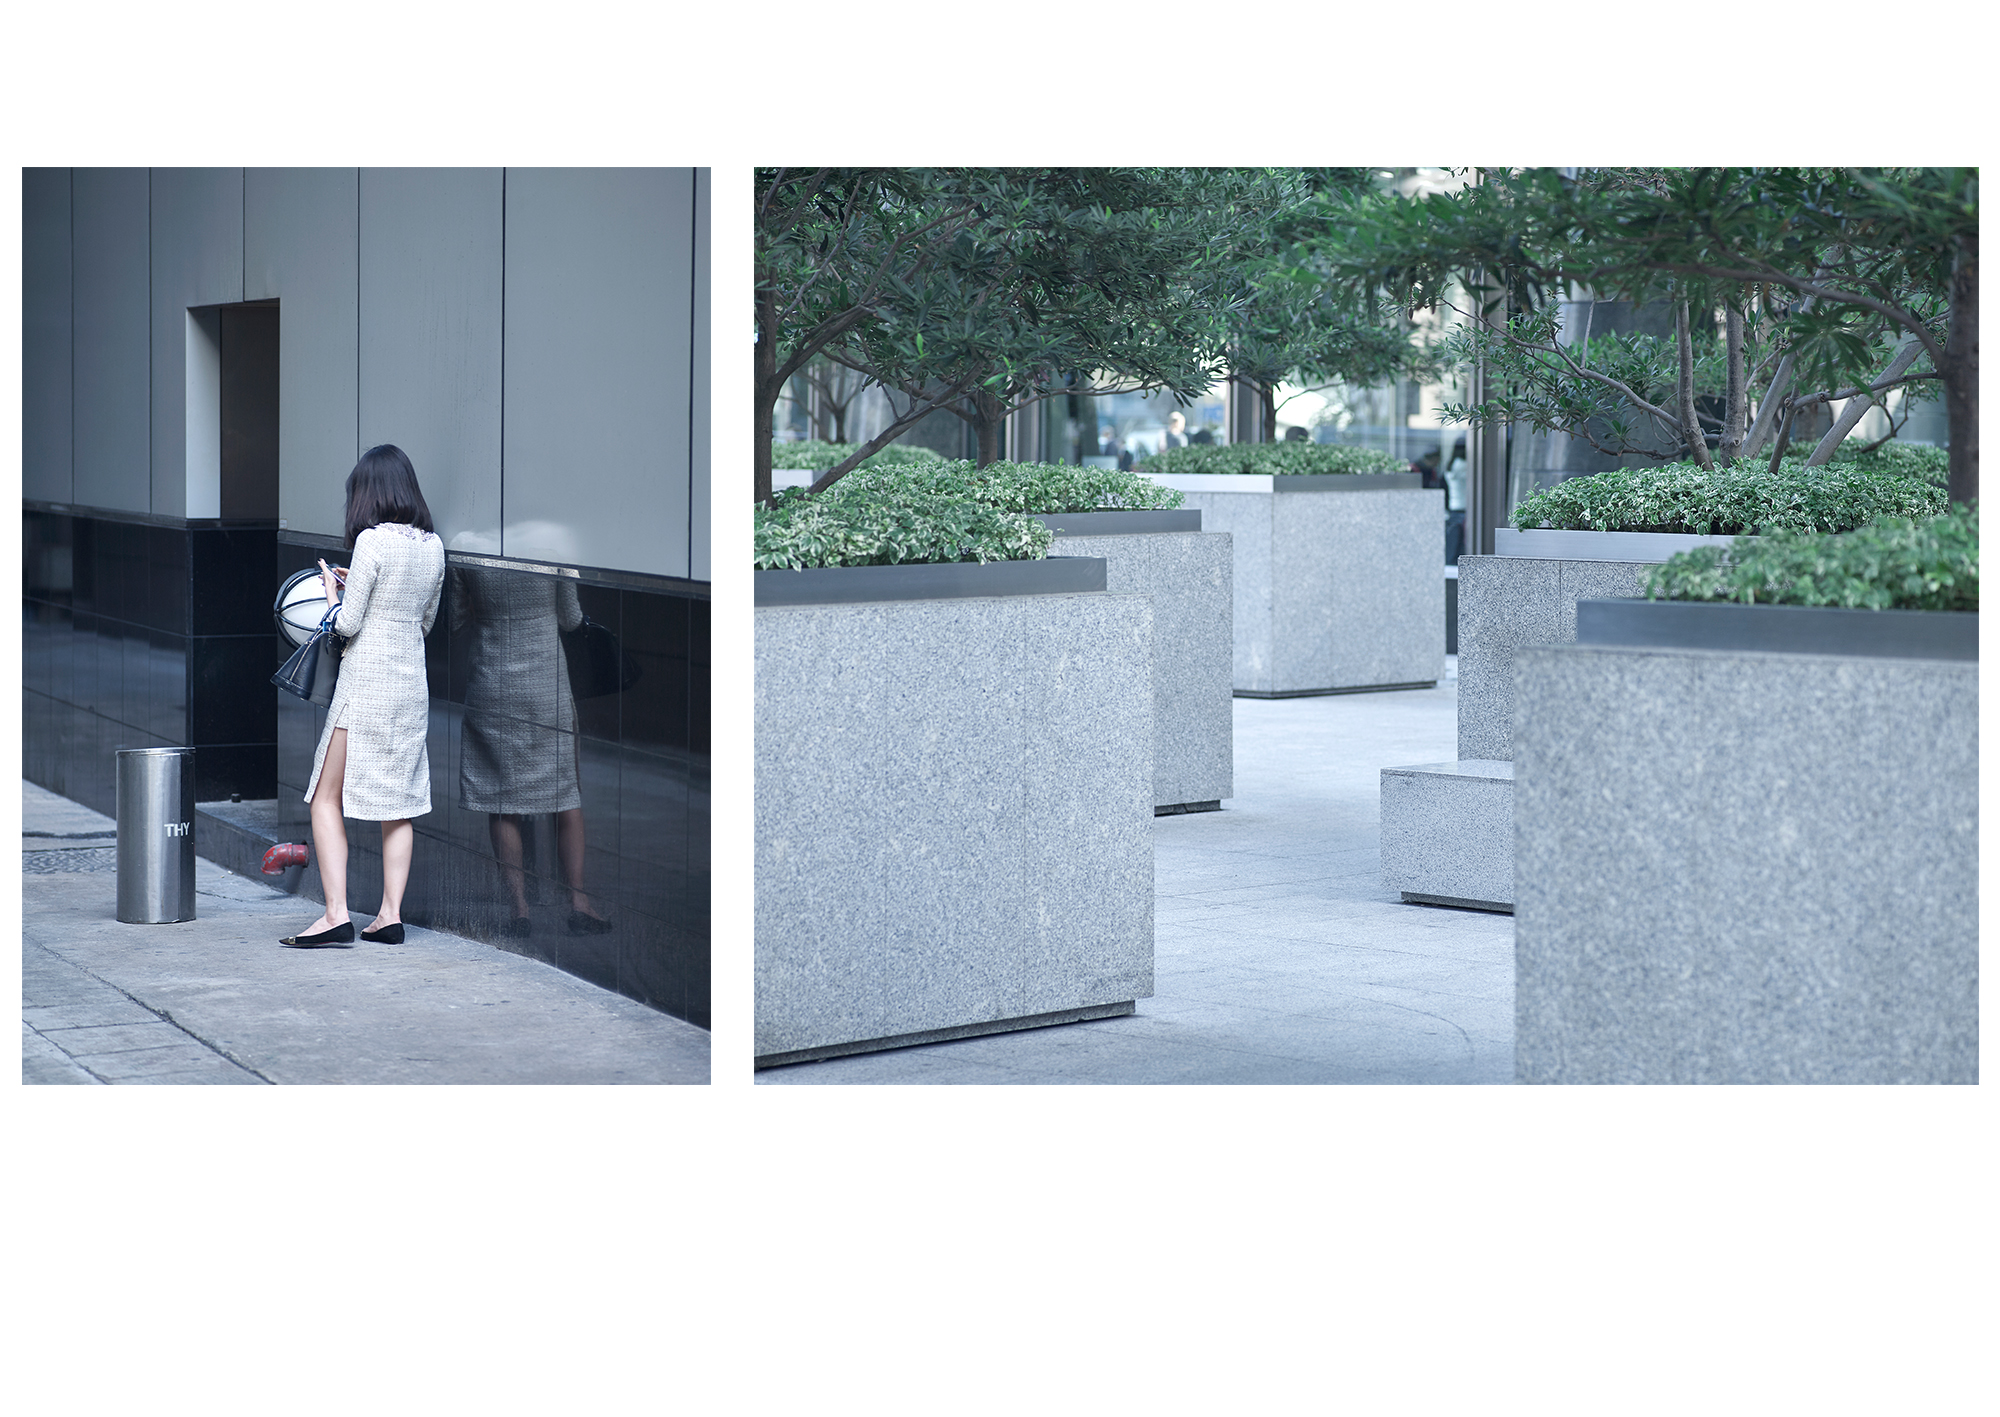 Hong Kong Stillness 7 + 8, 2015, Epson Photo Matt on dibond, oak frame, 45cmx60cm and 80cmx60cm, edition 1/7 + 1 AP